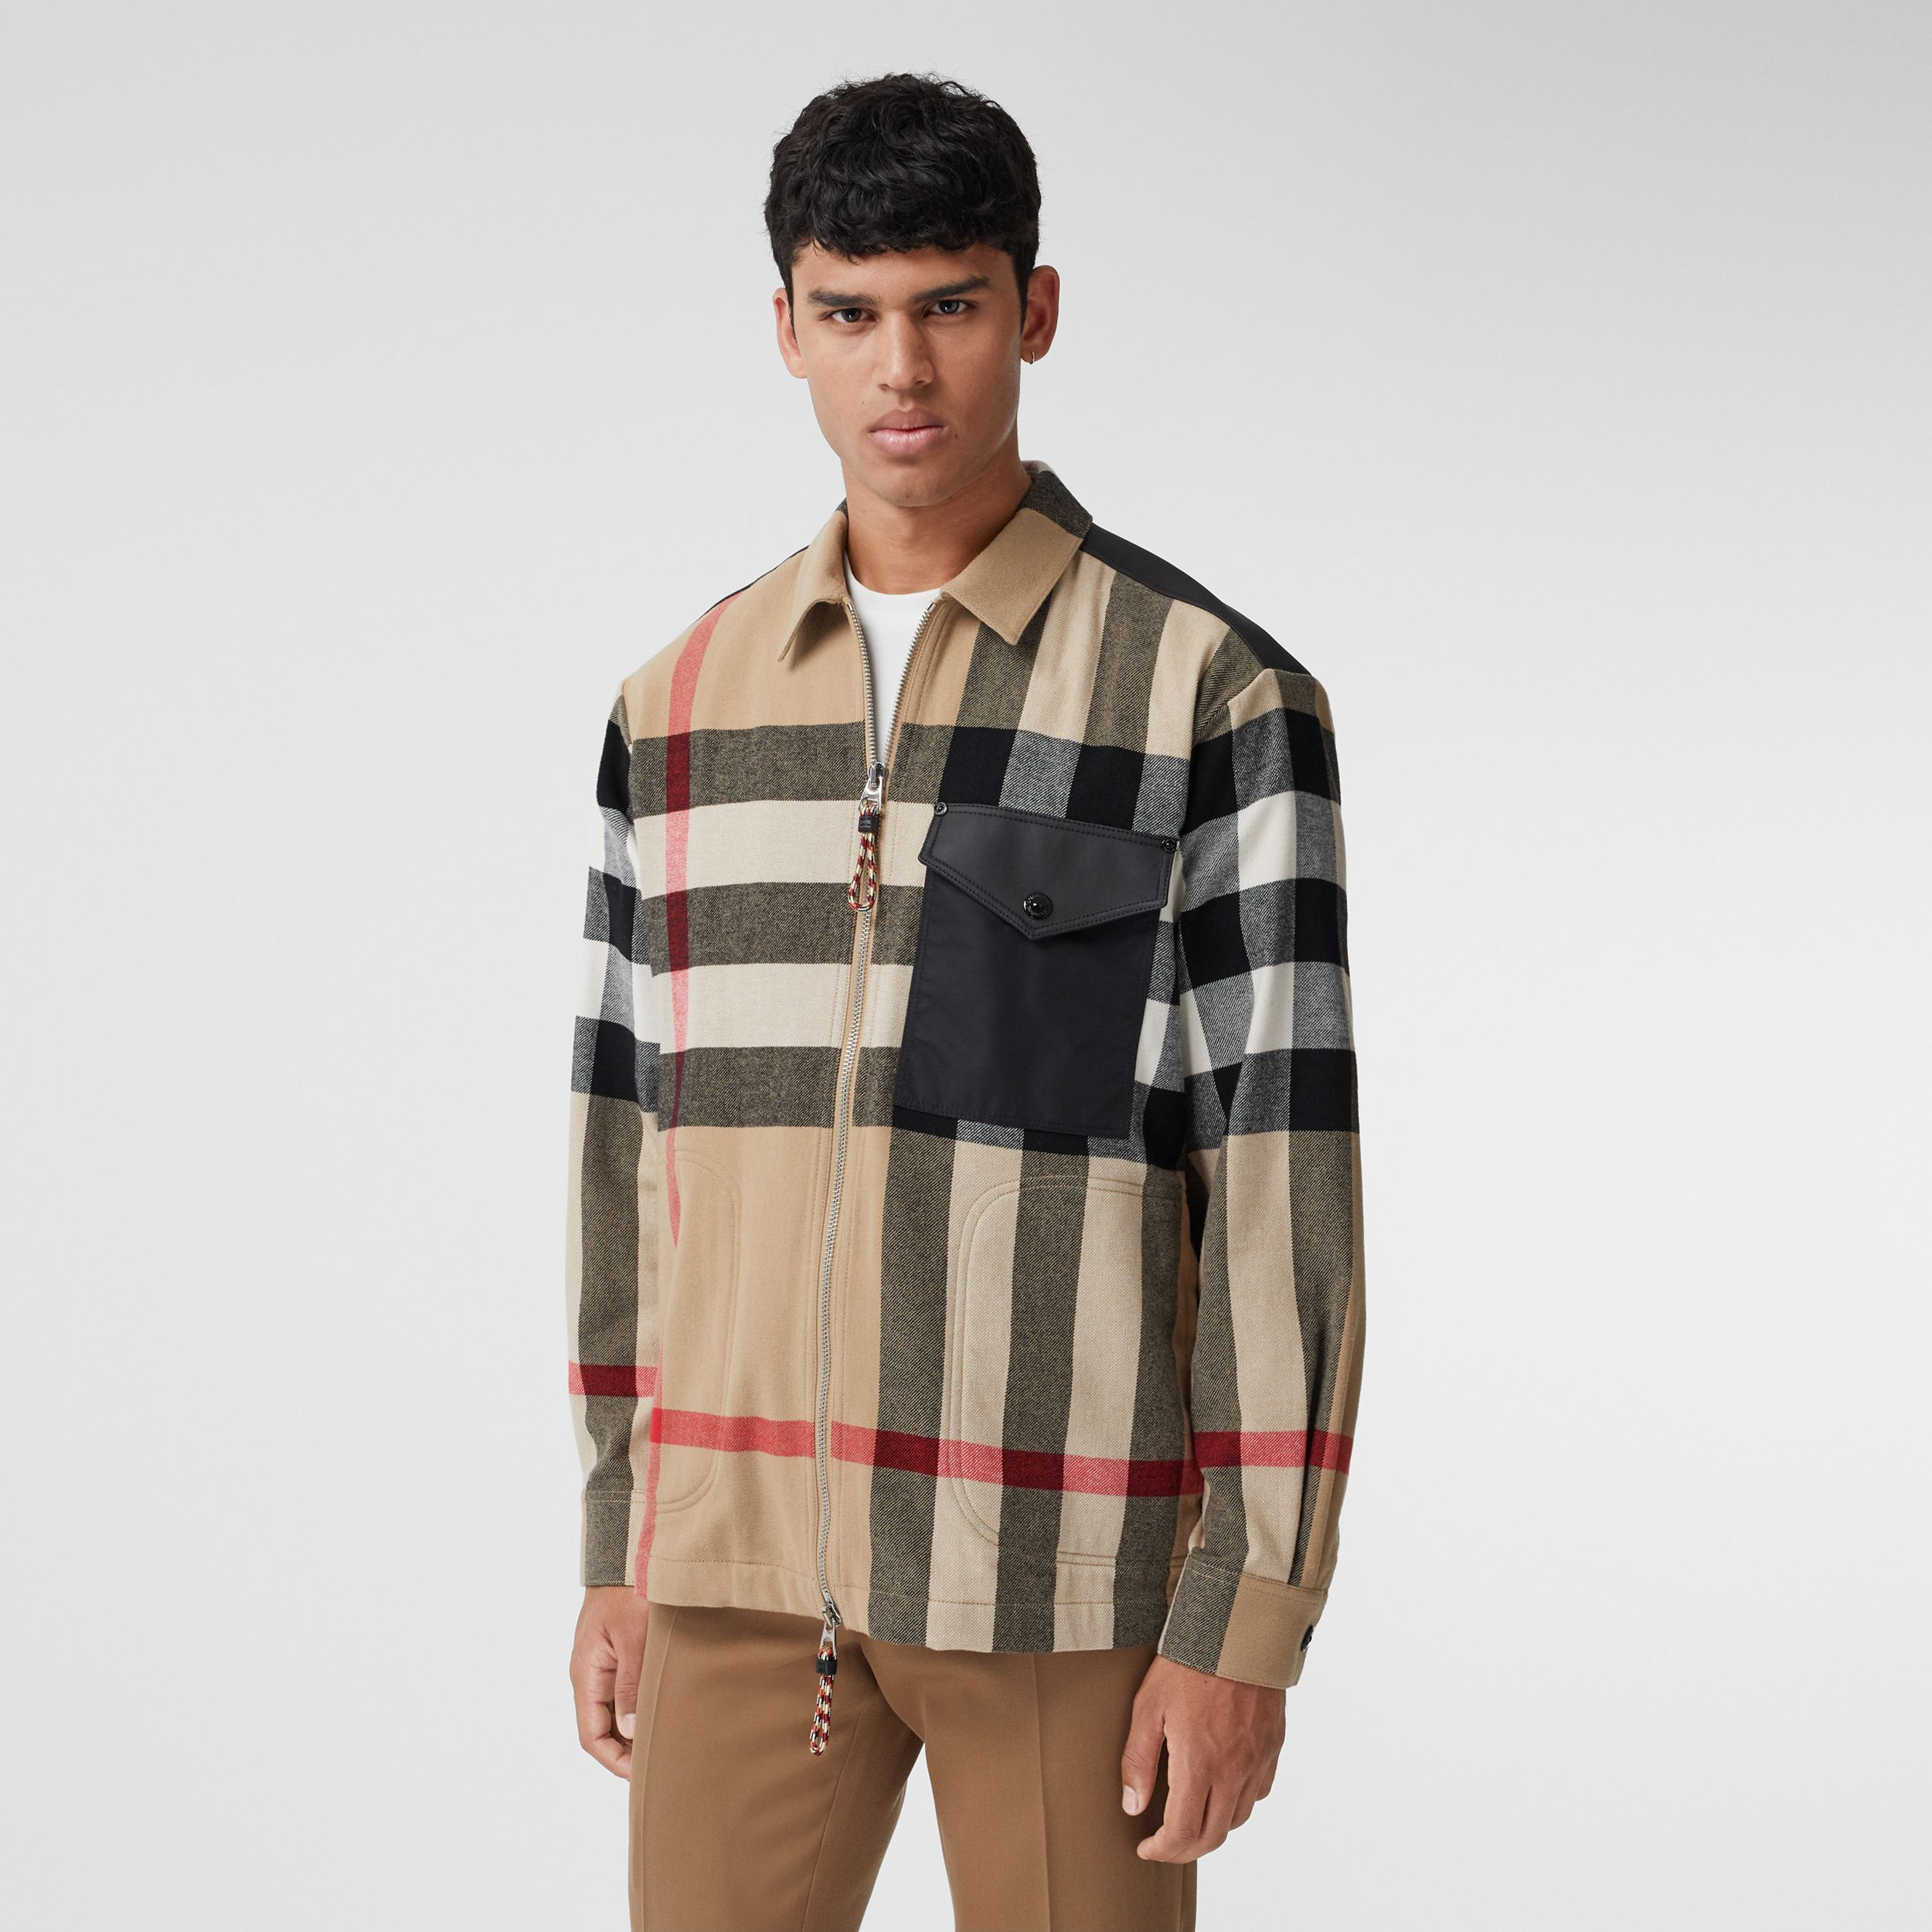 Contrast Panel Check Wool Cotton Shirt in Archive Beige - Men | Burberry - 1